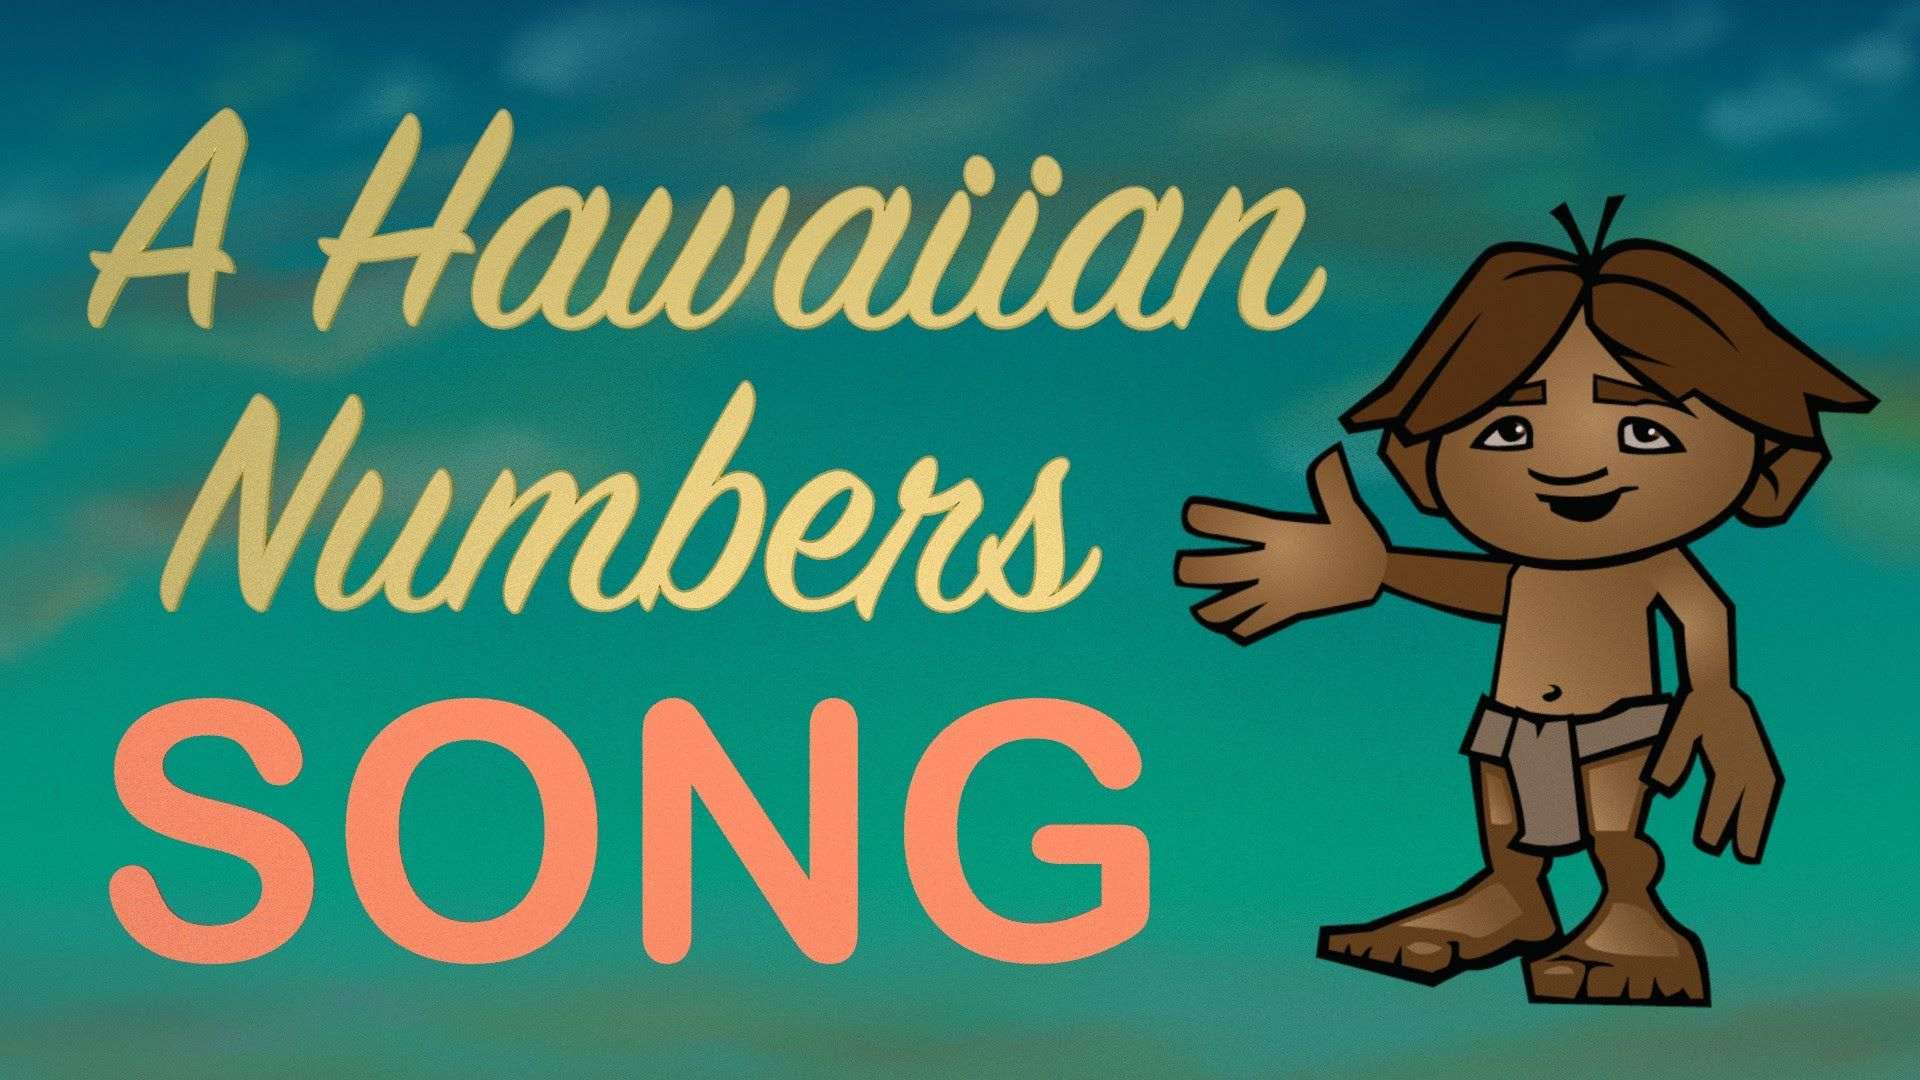 Learn The Hawaiian Numbers From 1 To 10 In Lelo Hawai I With Our Animated Learning Video